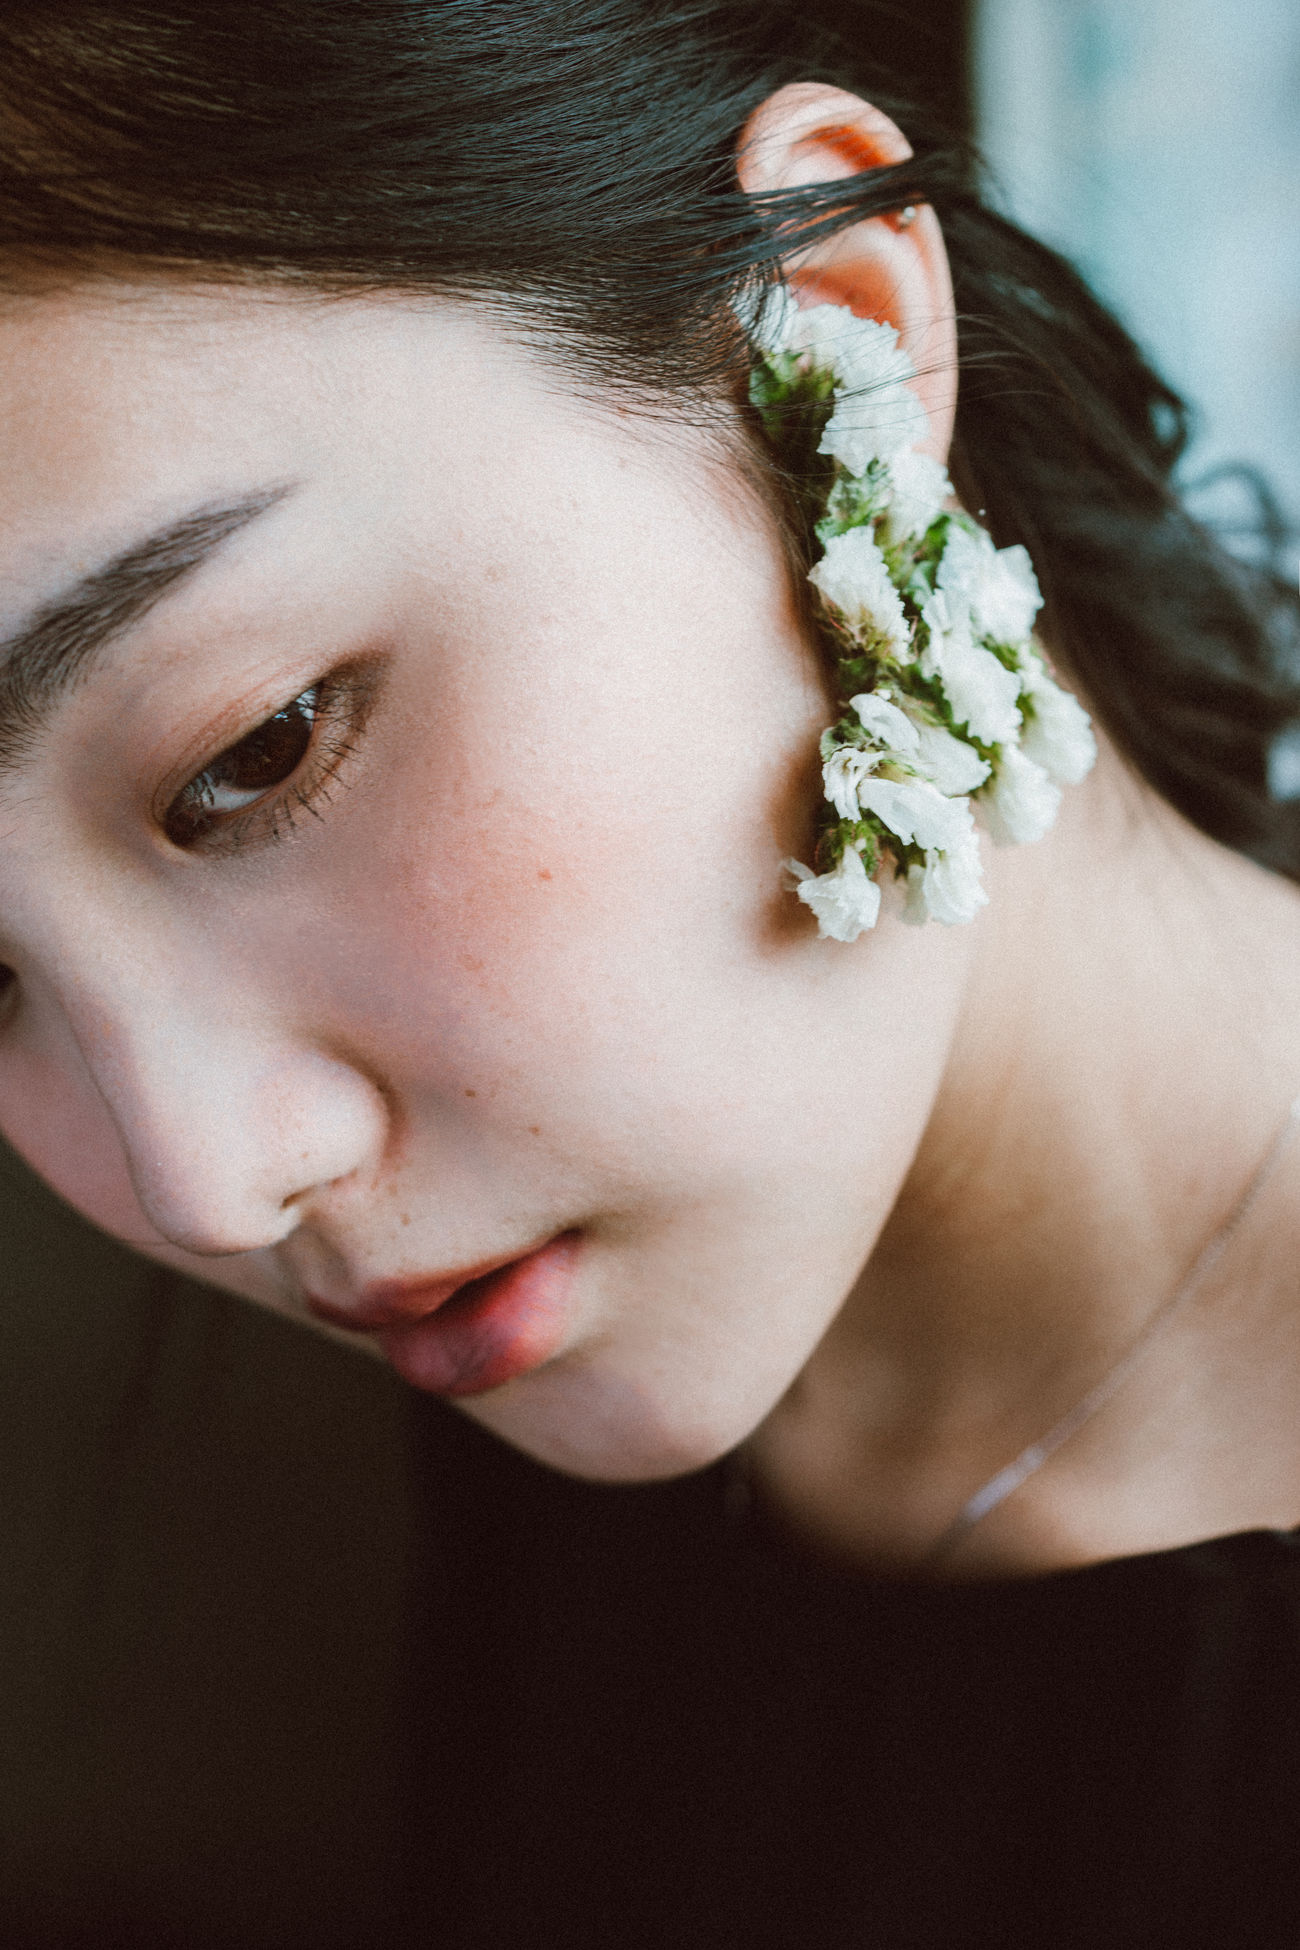 Childhood Close-up Day Elementary Age Flower Focus On Foreground Human Hand Indoors  Leisure Activity Lifestyles One Person People Real People The Portraitist - 2017 EyeEm Awards Young Adult Young Women